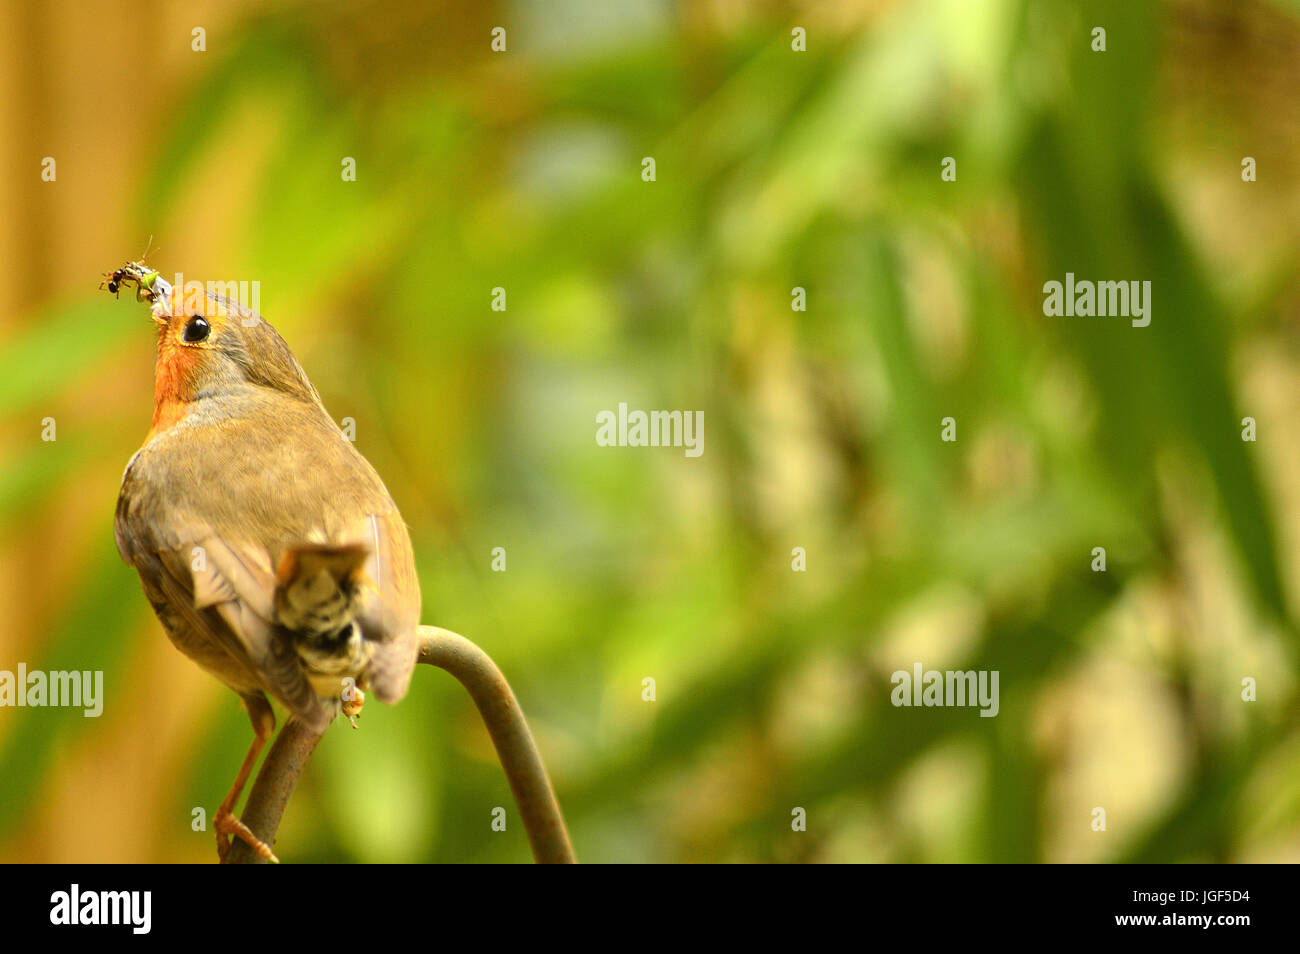 Robins with food for young - Stock Image